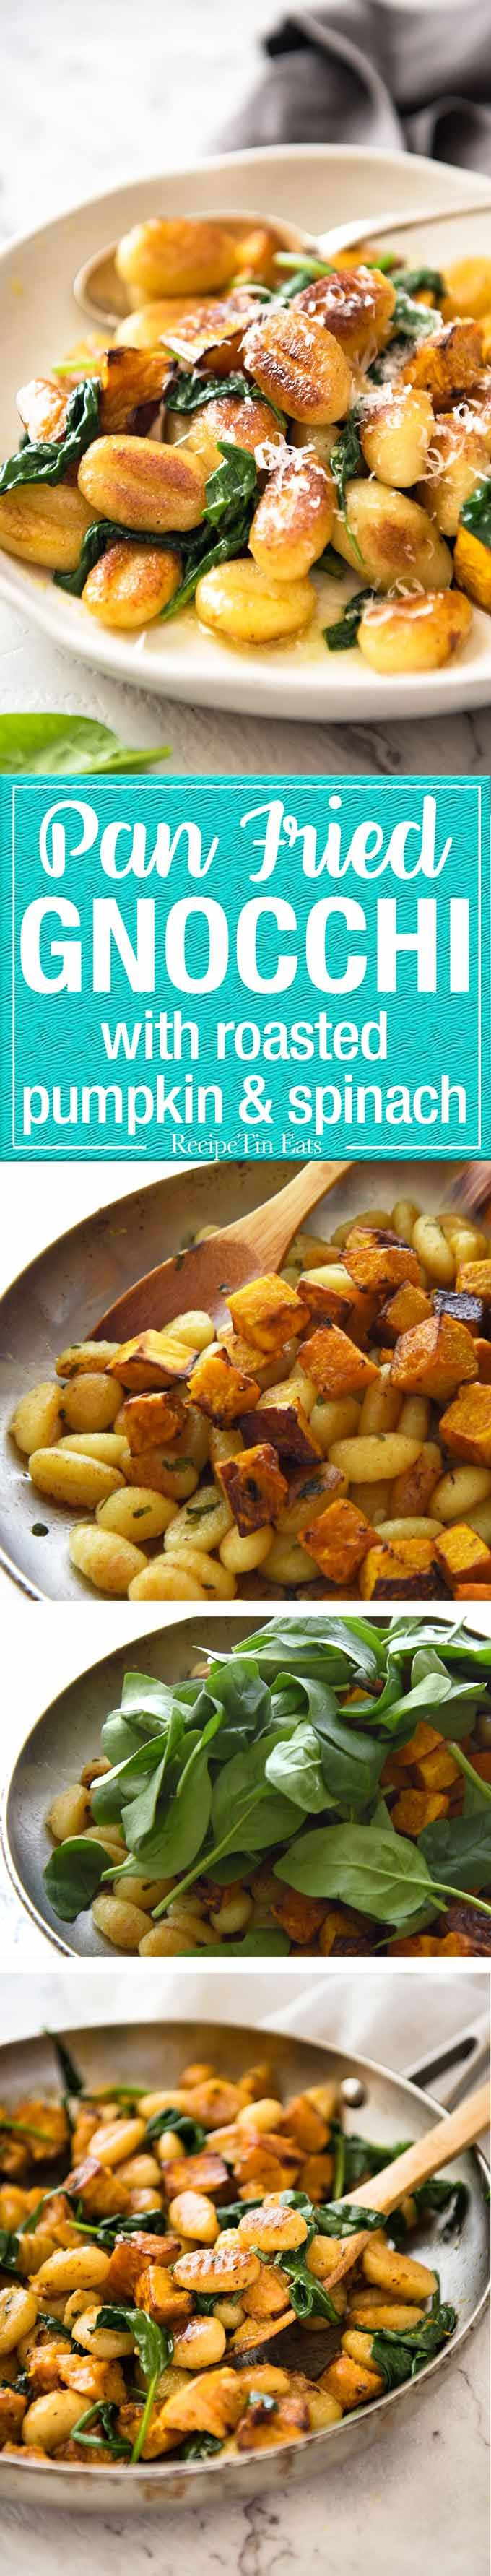 Pan Fried Gnocchi With Pumpkin And Spinach.